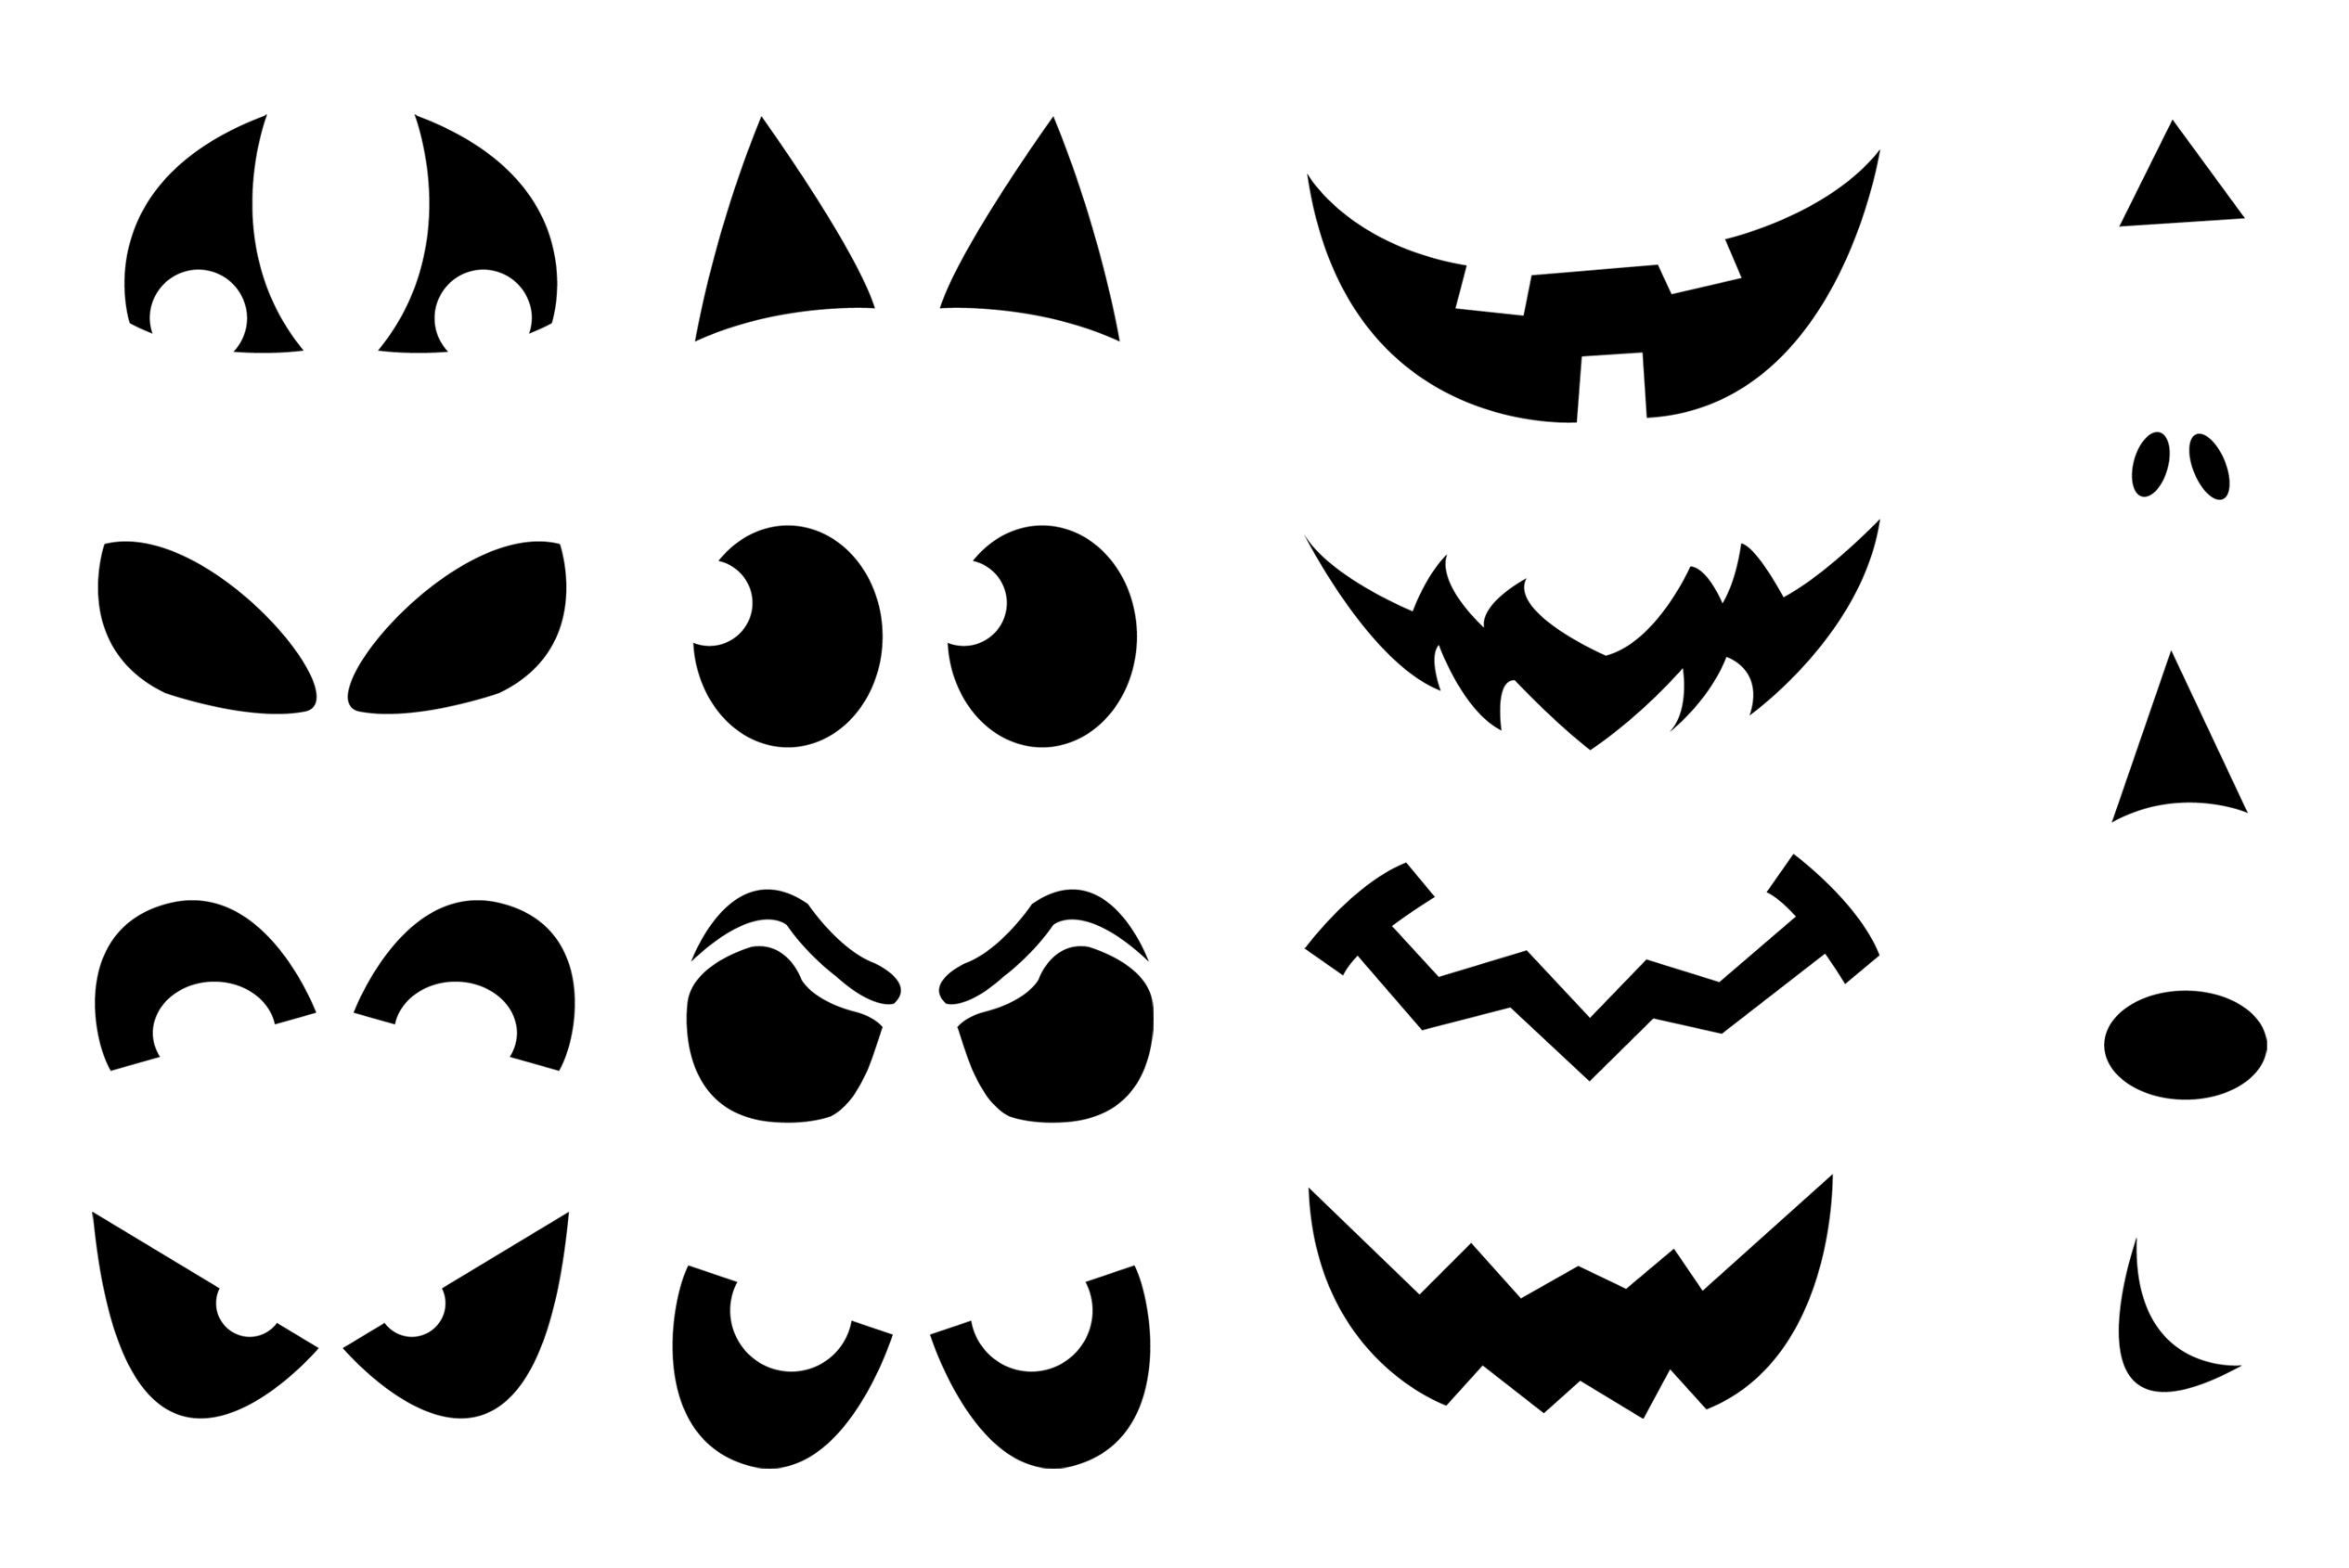 Shapes For Ghost Eye Cutouts